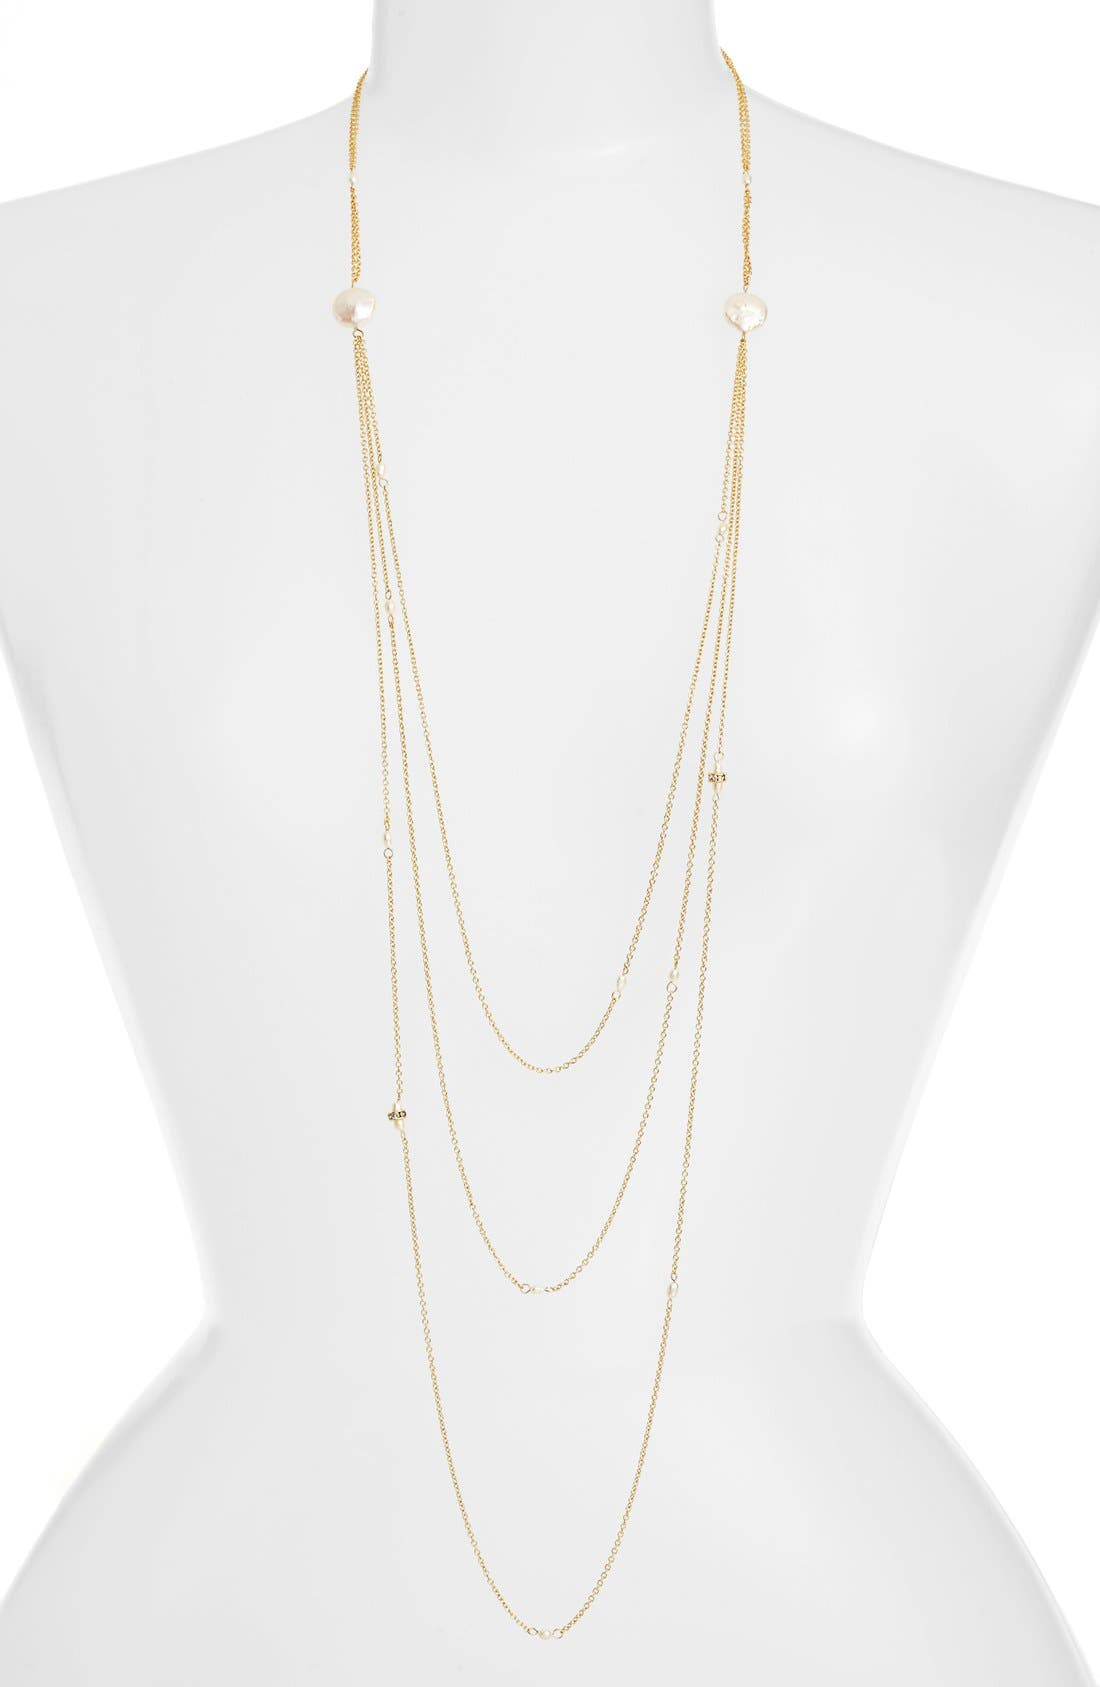 Tiered Chain Necklace,                         Main,                         color, Gold